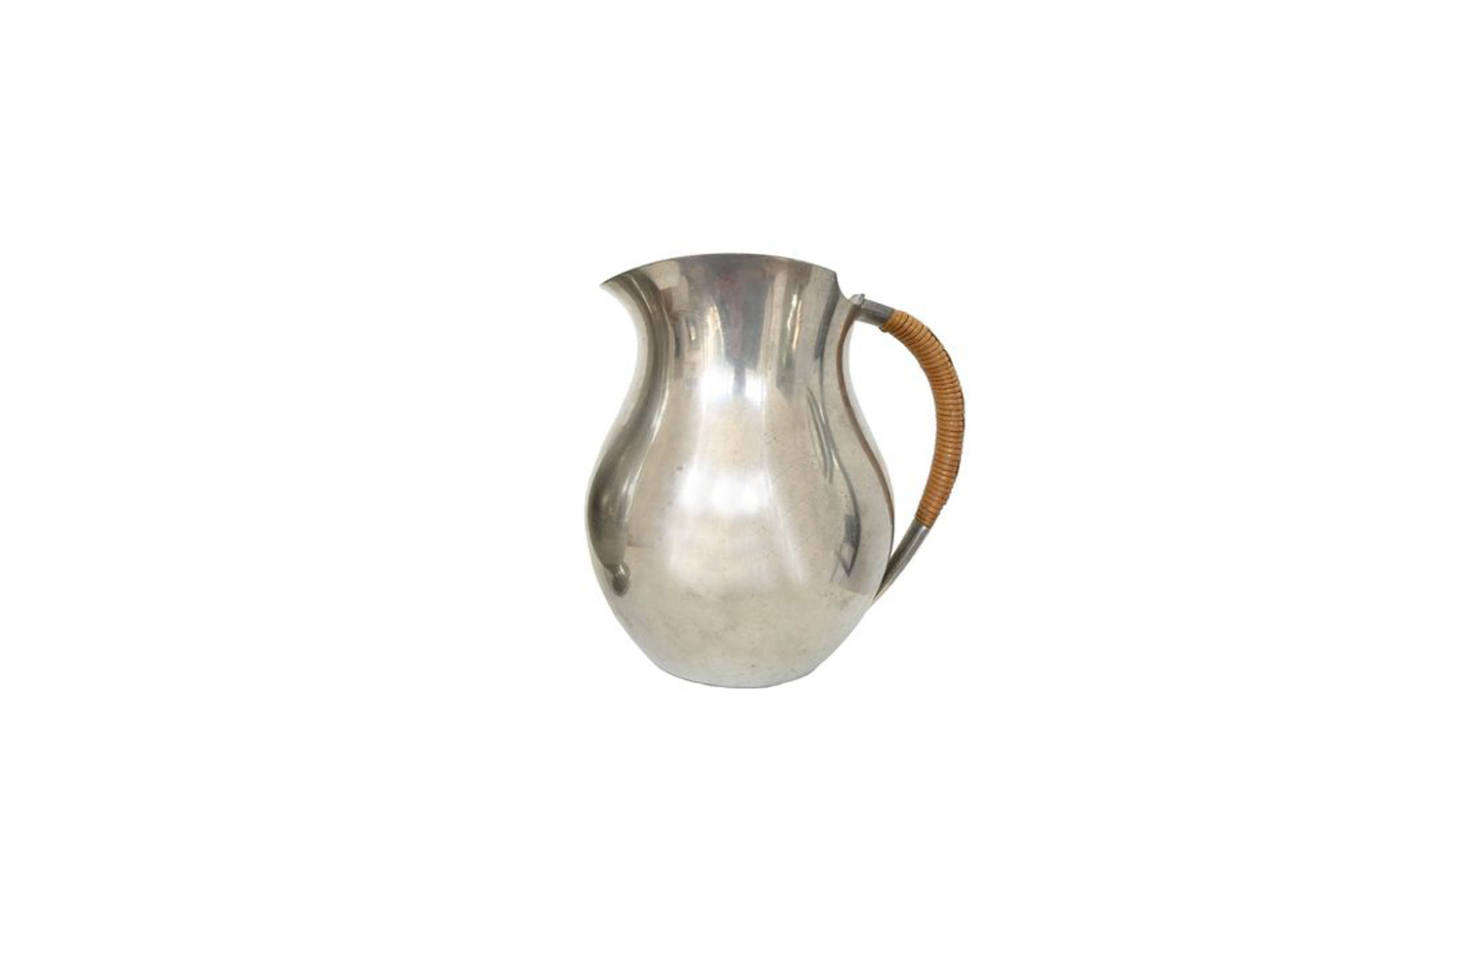 The Vintage Just Andersen Danish Pewter Pitcher can be sourced from Chairish and other online vintage dealers.